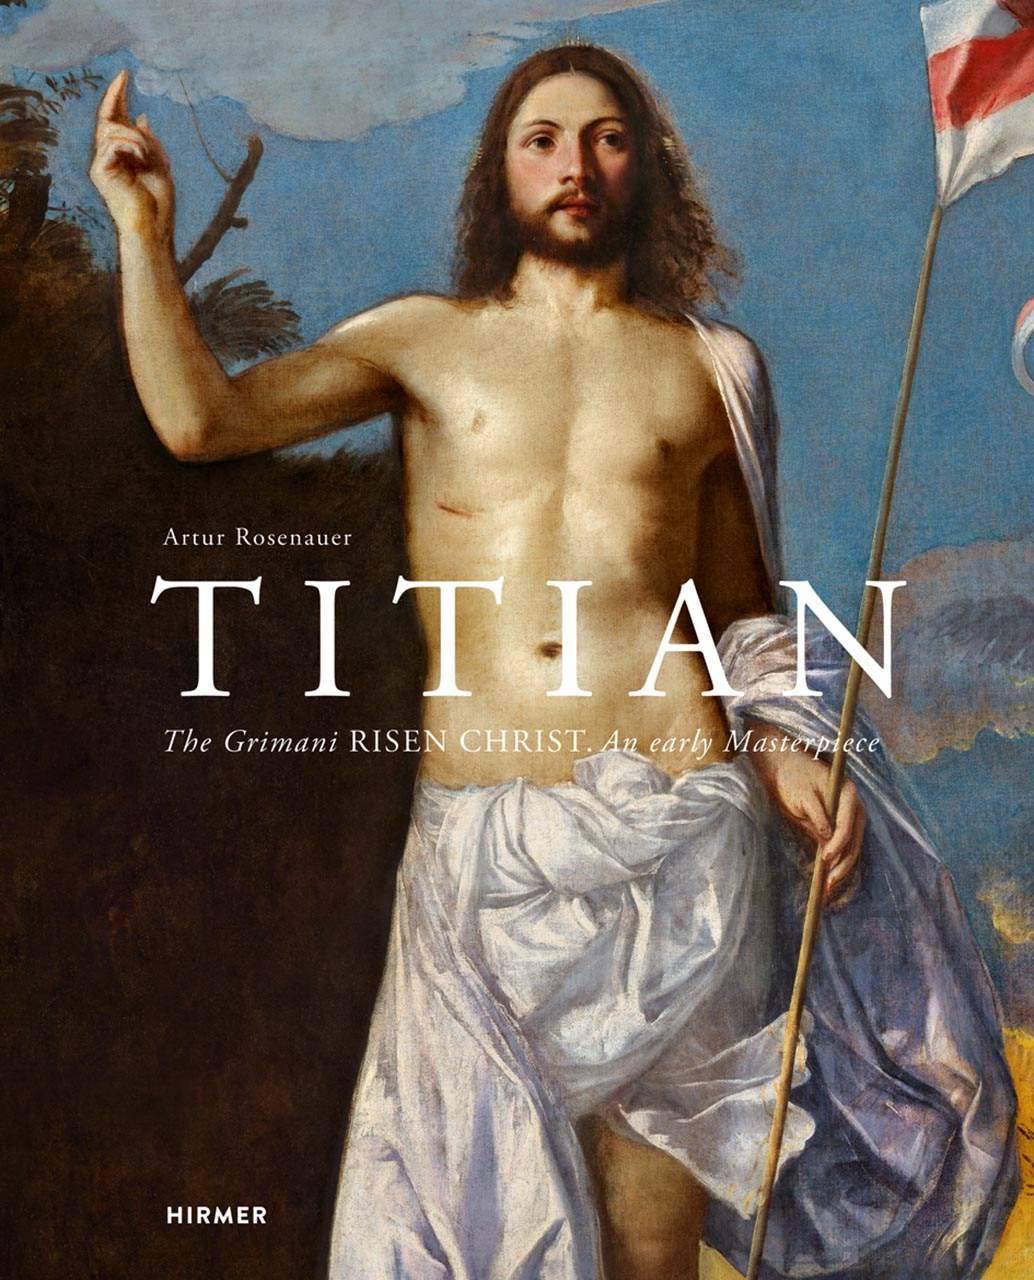 Titian: The Grimani Risen Christ. An Early Masterpiece